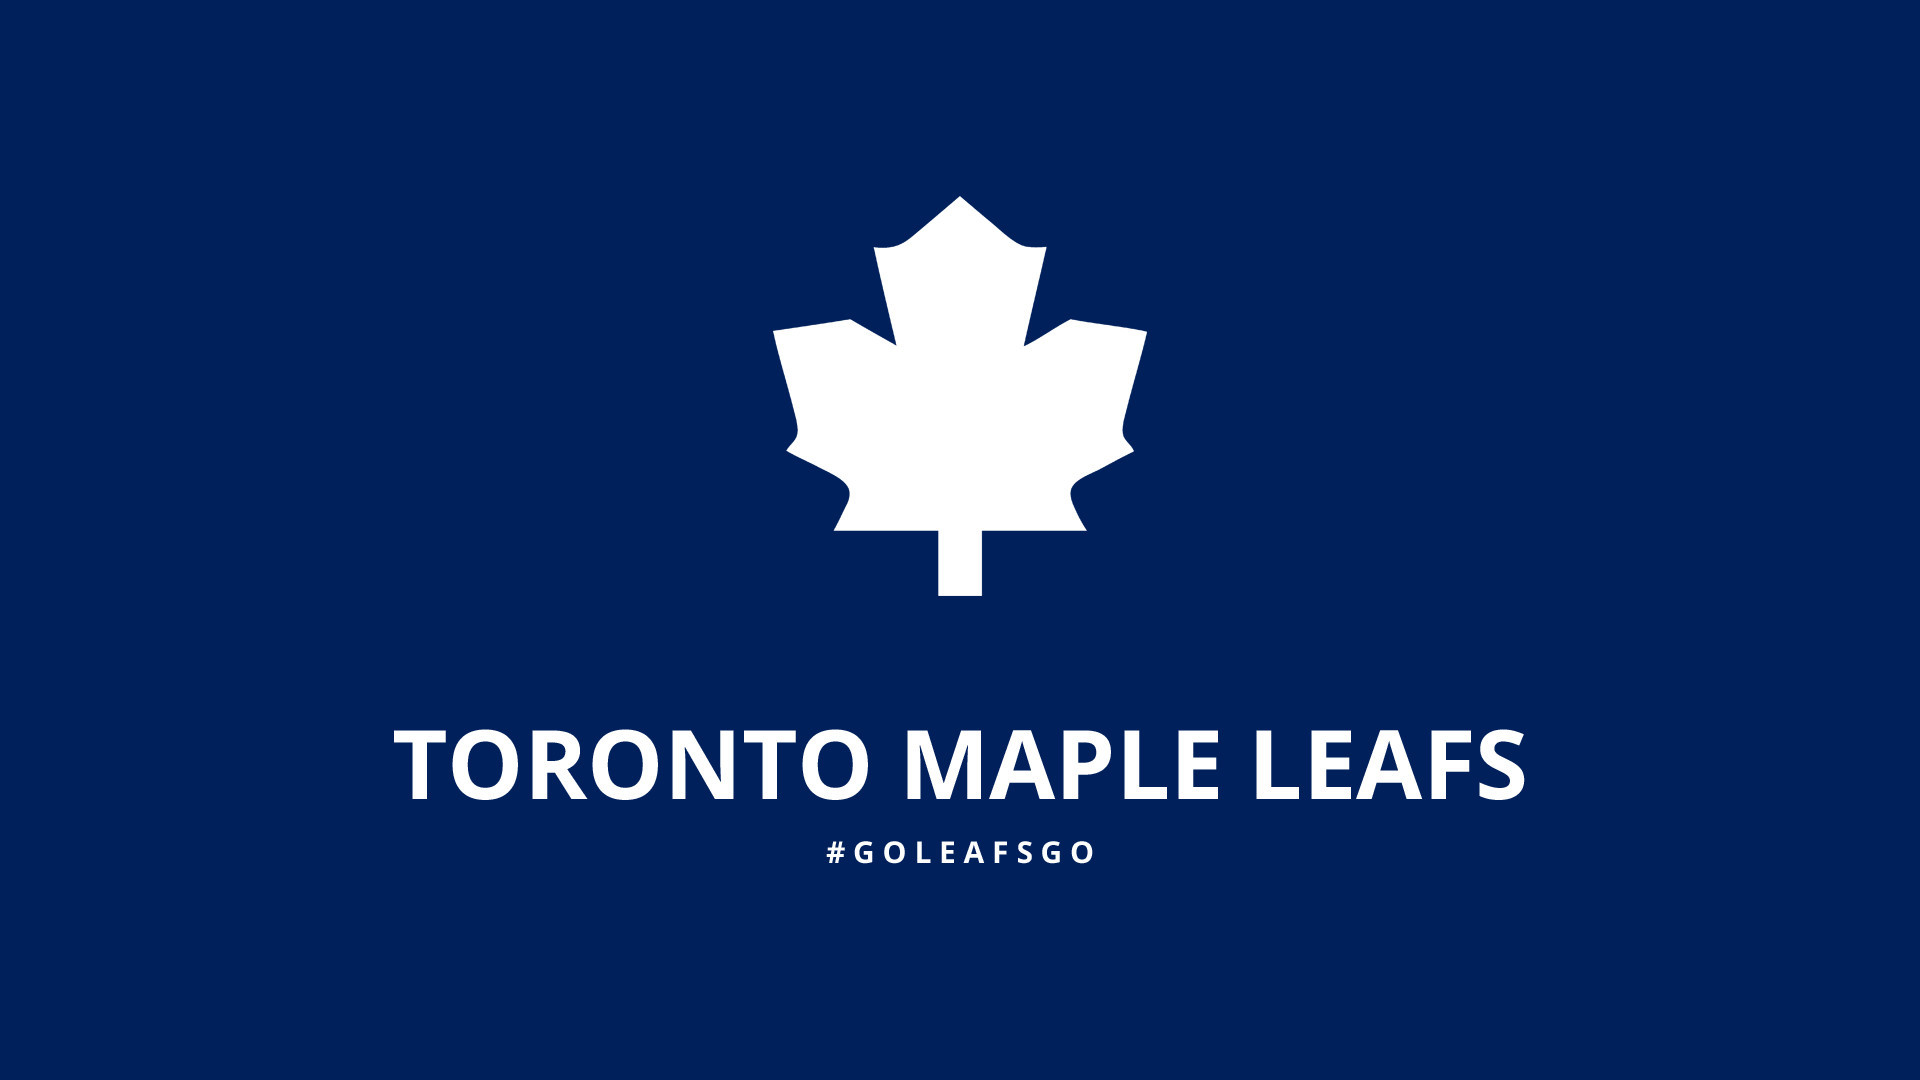 1920x1080  Toronto Maple Leafs Wallpapers 2015 - Wallpaper Cave